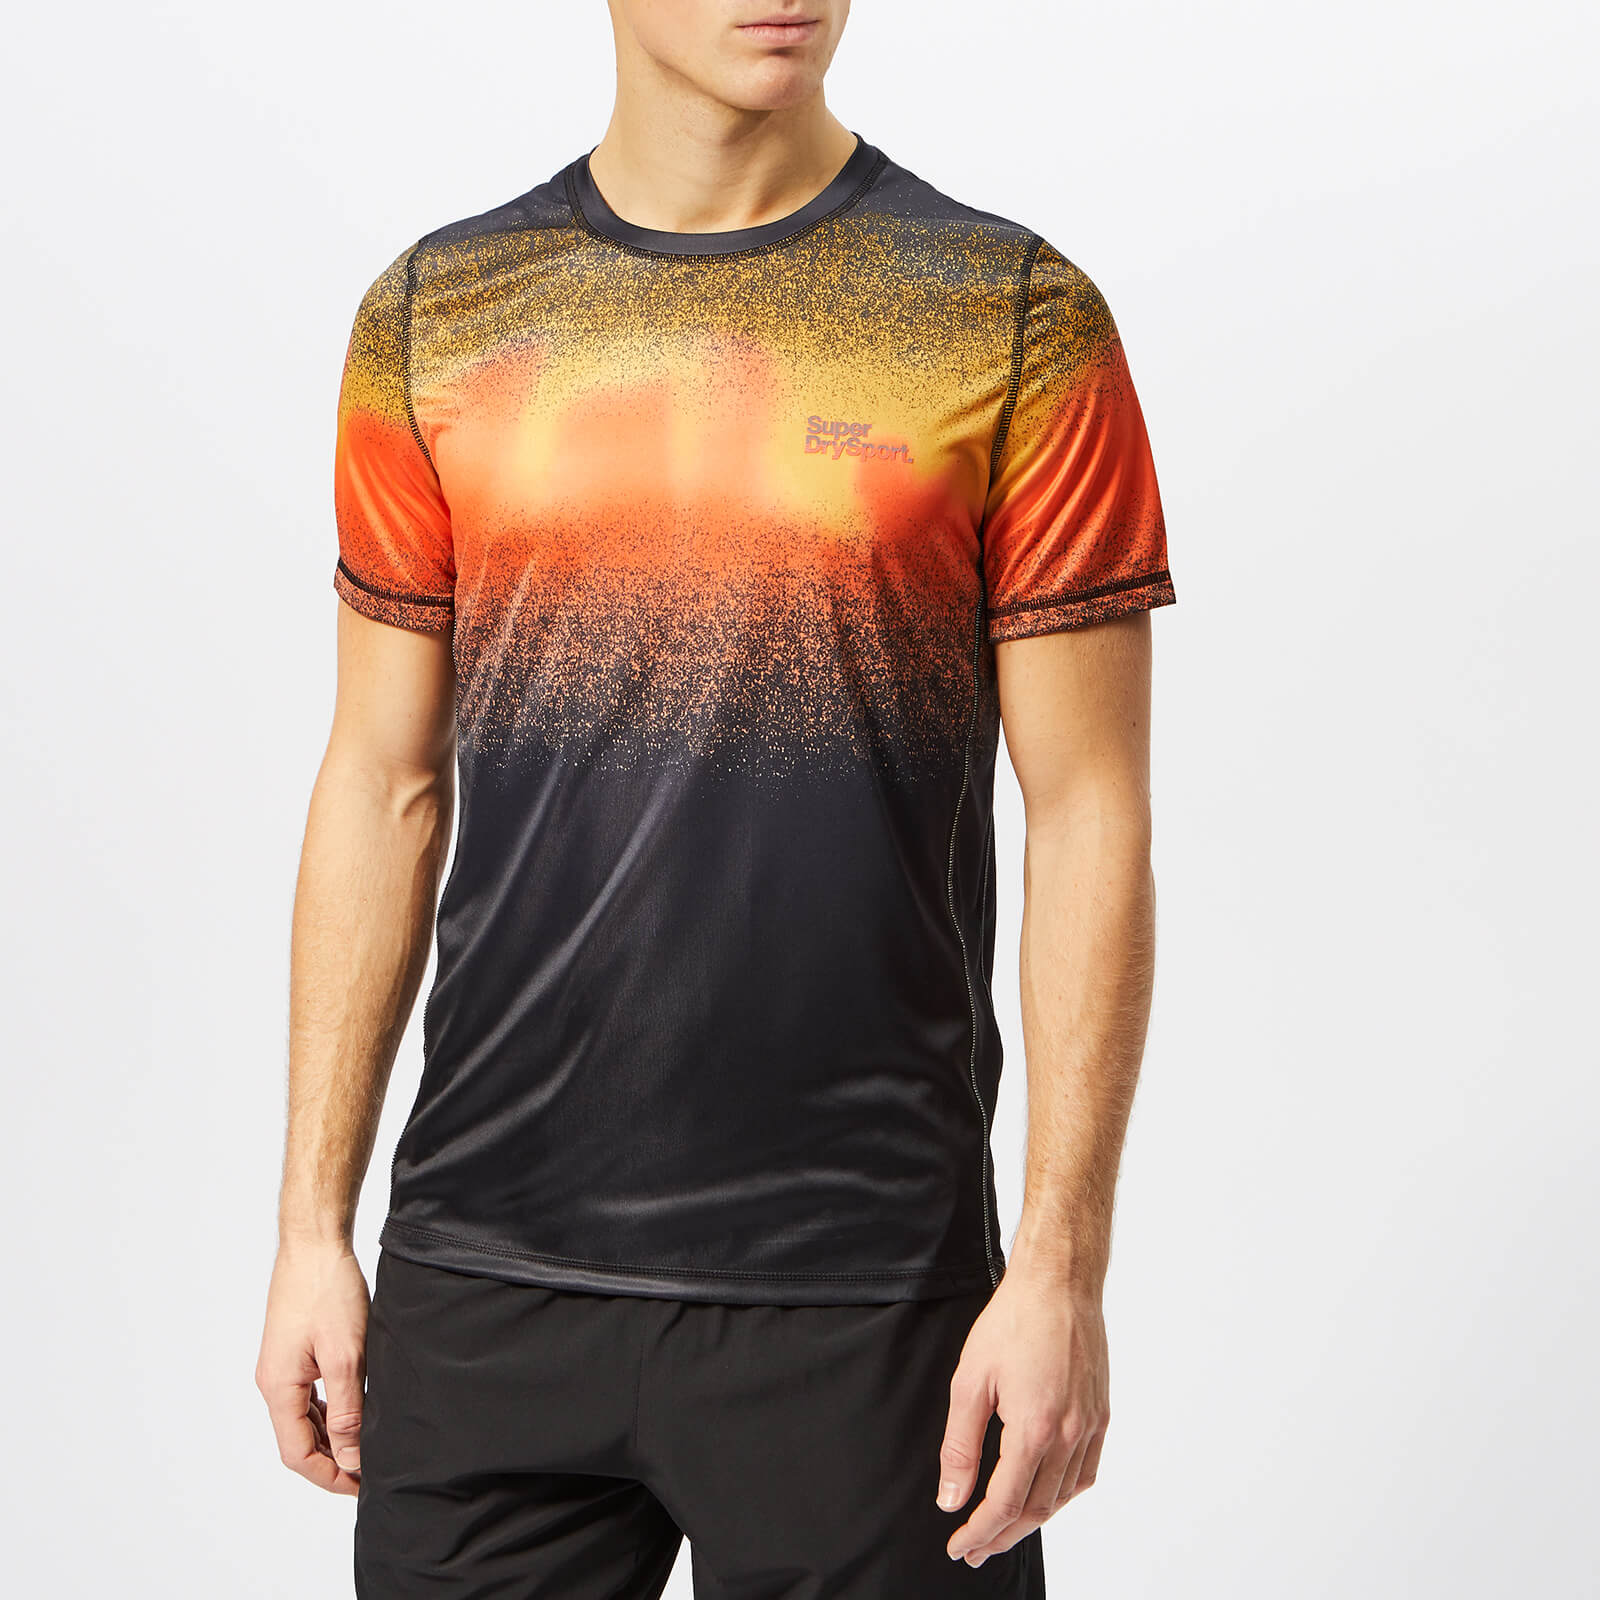 separation shoes f37e8 7bf3b Superdry Sport Men's Active Ombre Short Sleeve T-Shirt - Ink Orange Ombre  Splat